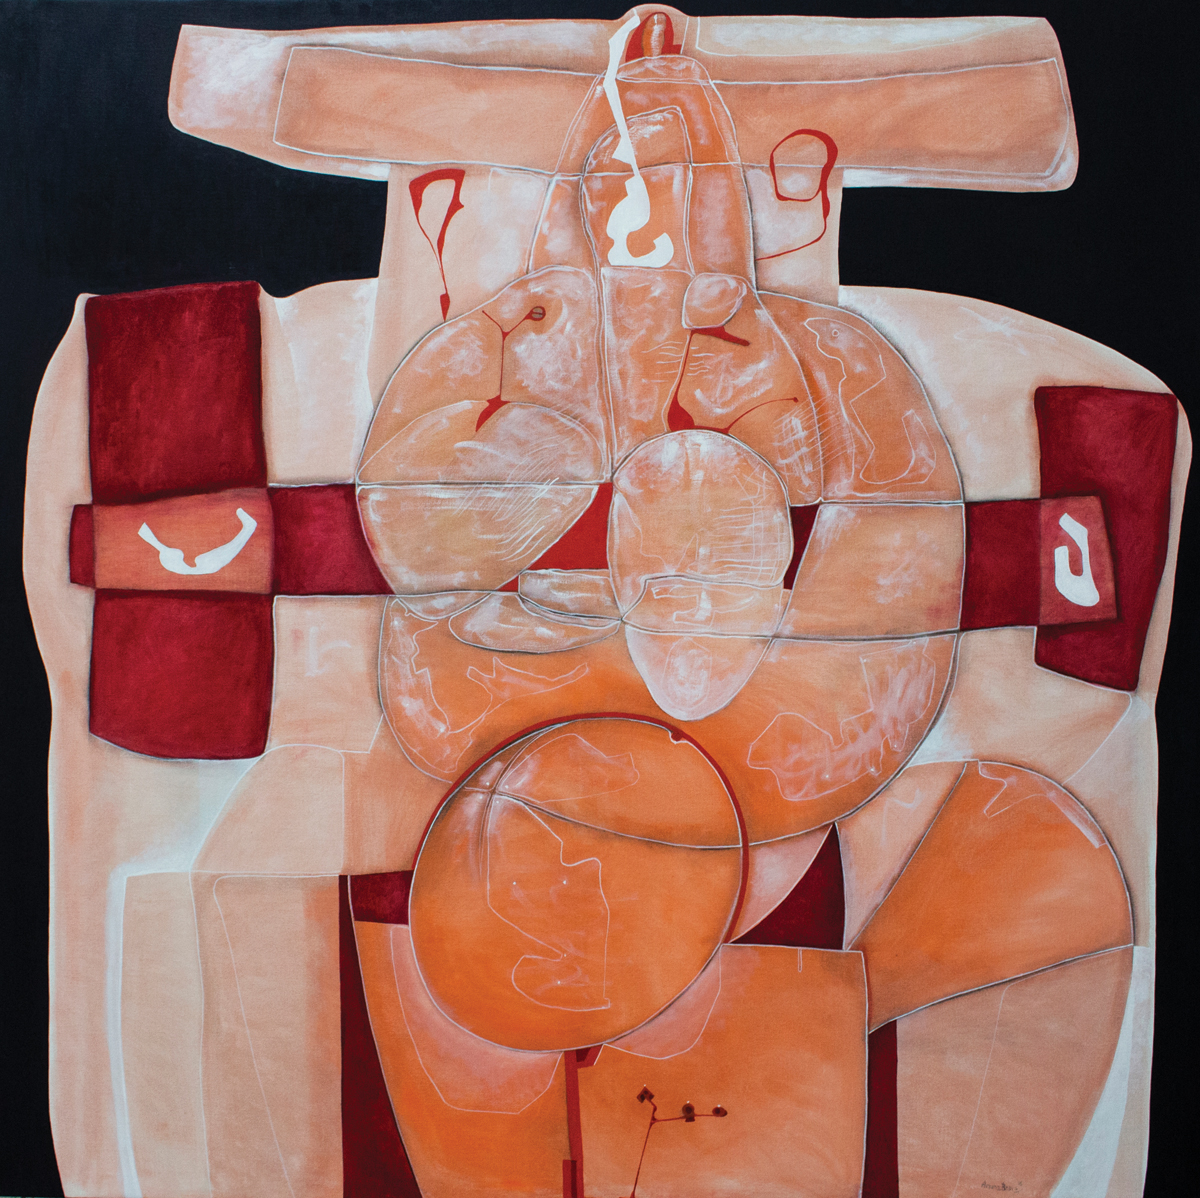 Educhka granate, oil on canvas, 78	x 78 in, 2016